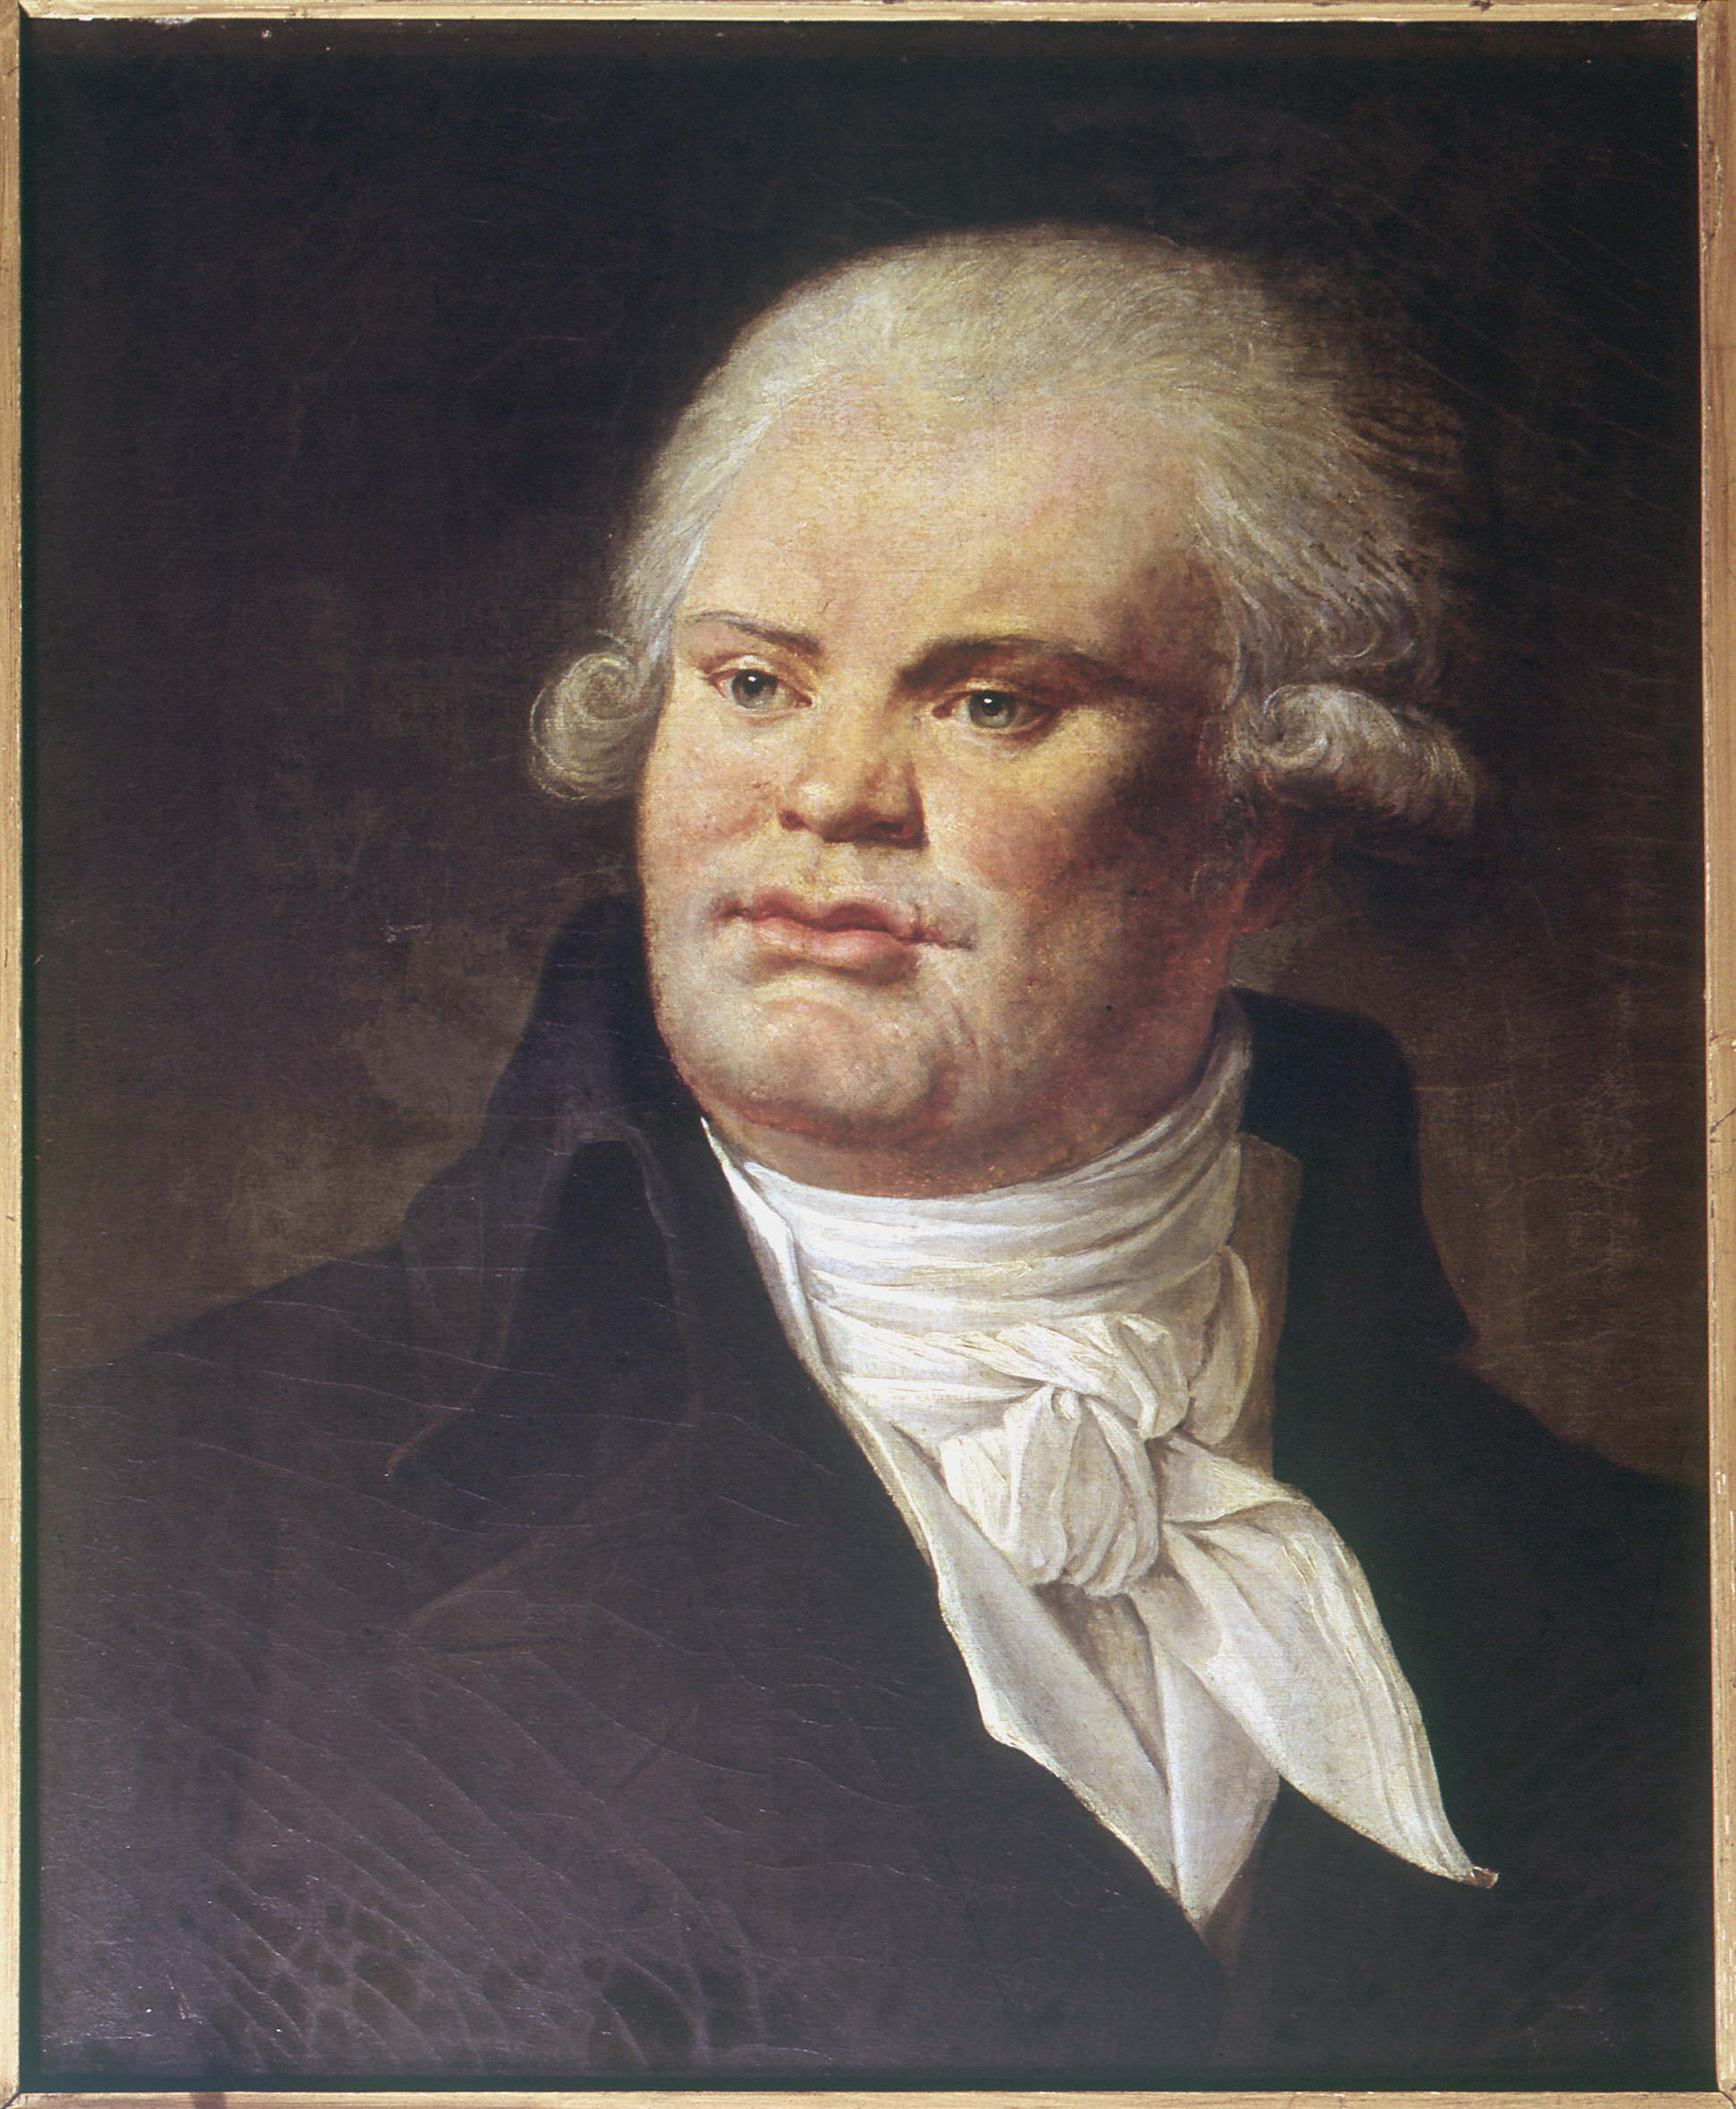 georges-jacques-danton - French Revolution Pictures - French Revolution - HISTORY.com